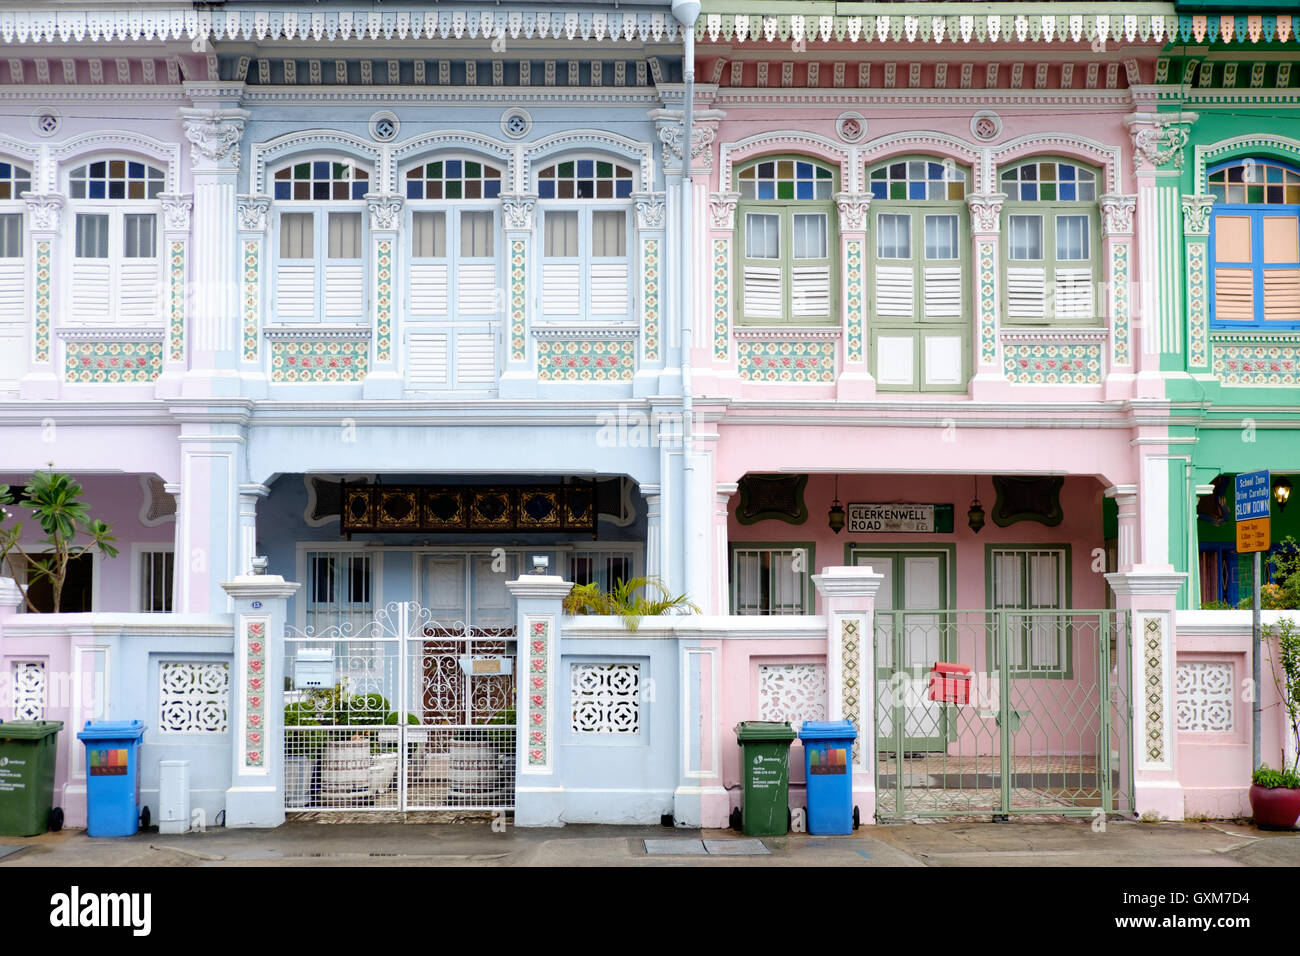 Late Shophouse Style houses in Joo Chiat area of Singapore - Stock Image